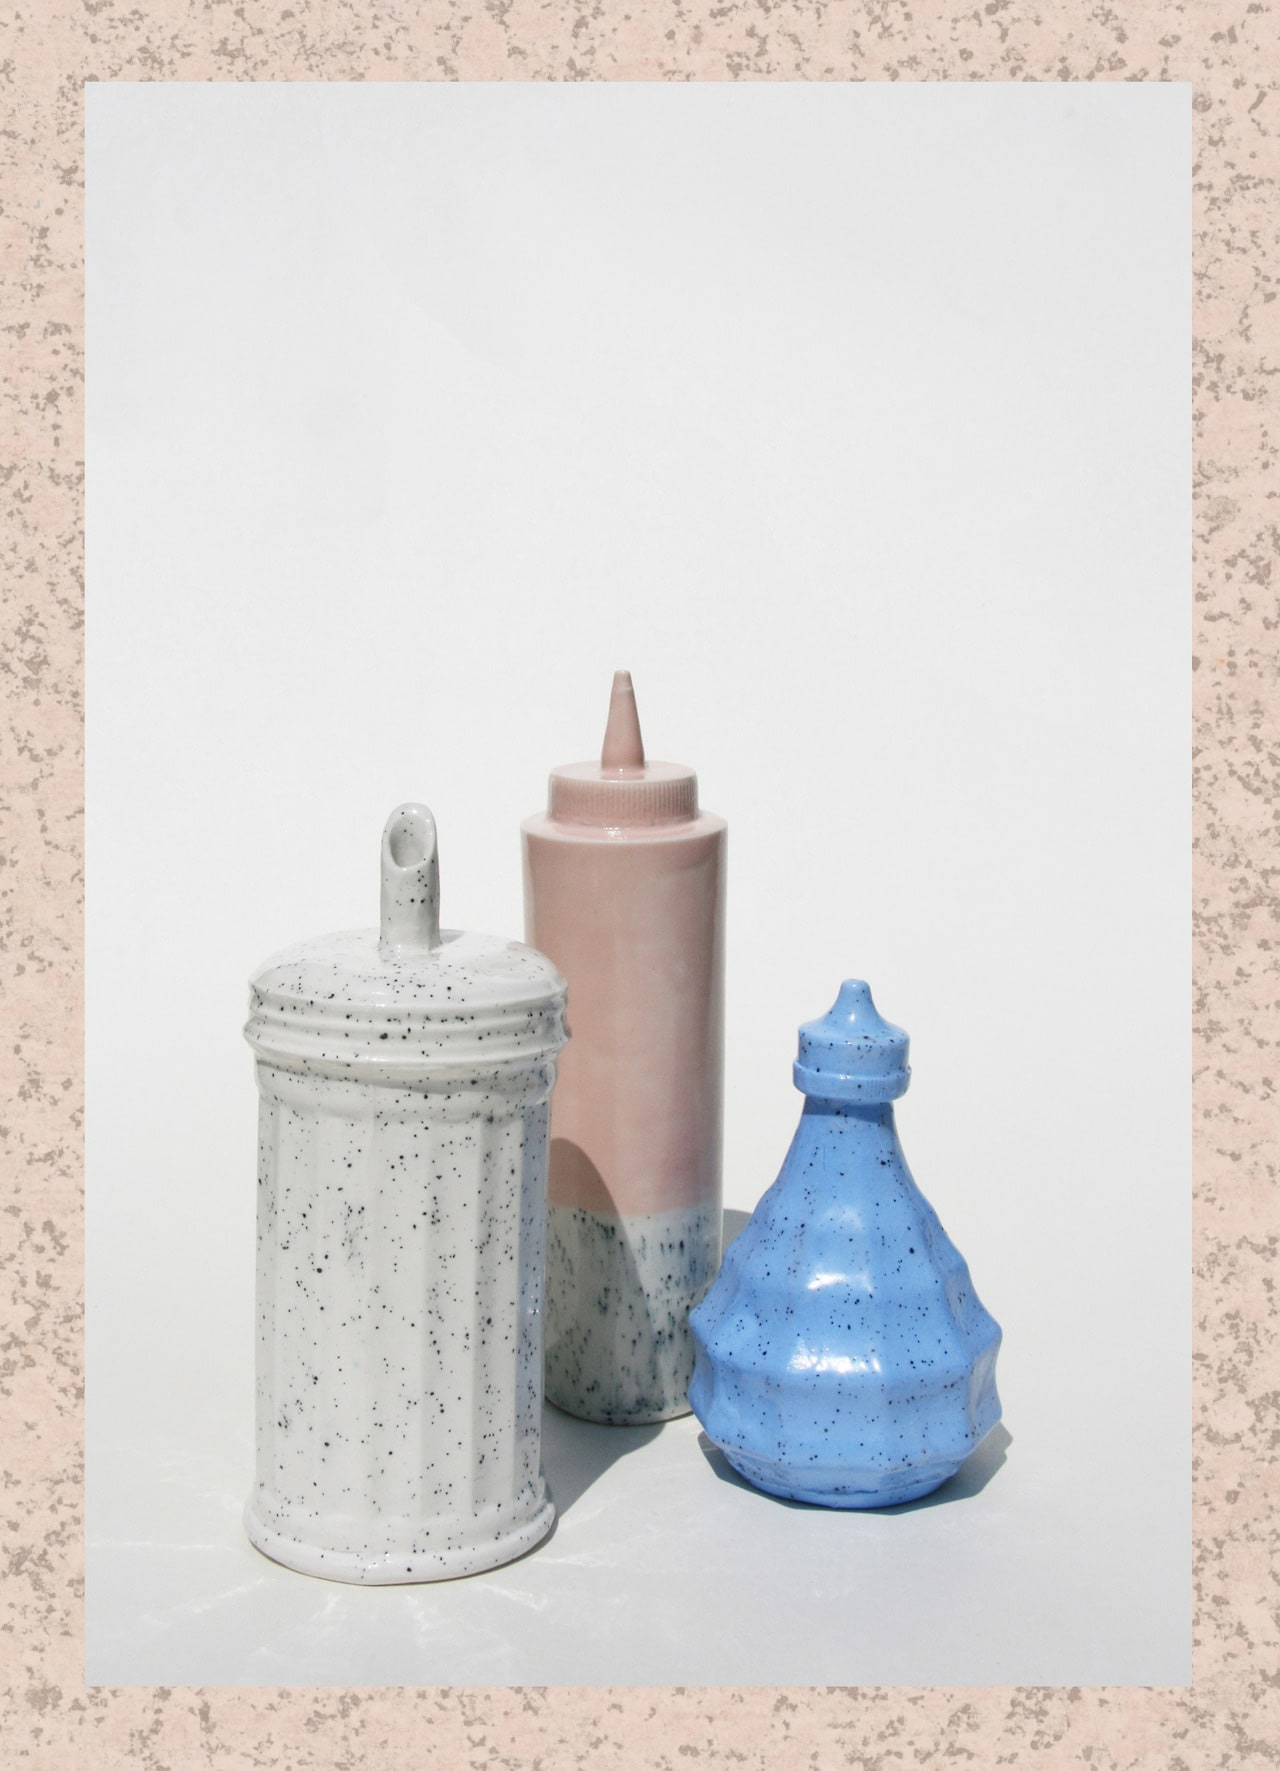 camberwell-ba-Illustration-chloe-greenfield-greasy-spoon-ceramics.jpg